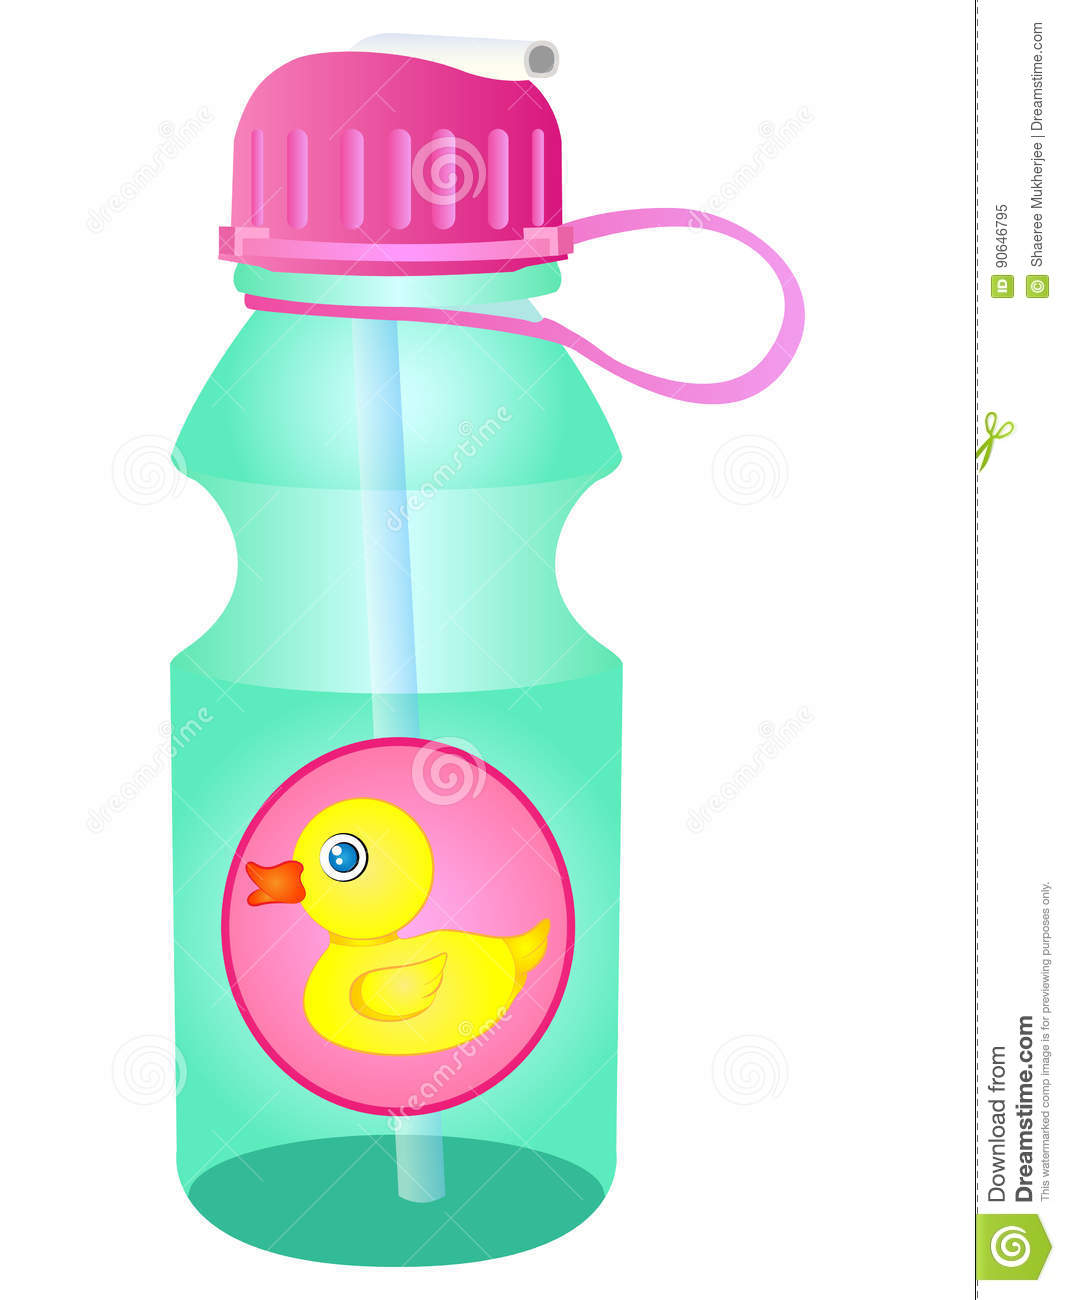 Water Bottle Graphic: Vector Water Bottle Sipper Stock Vector. Illustration Of